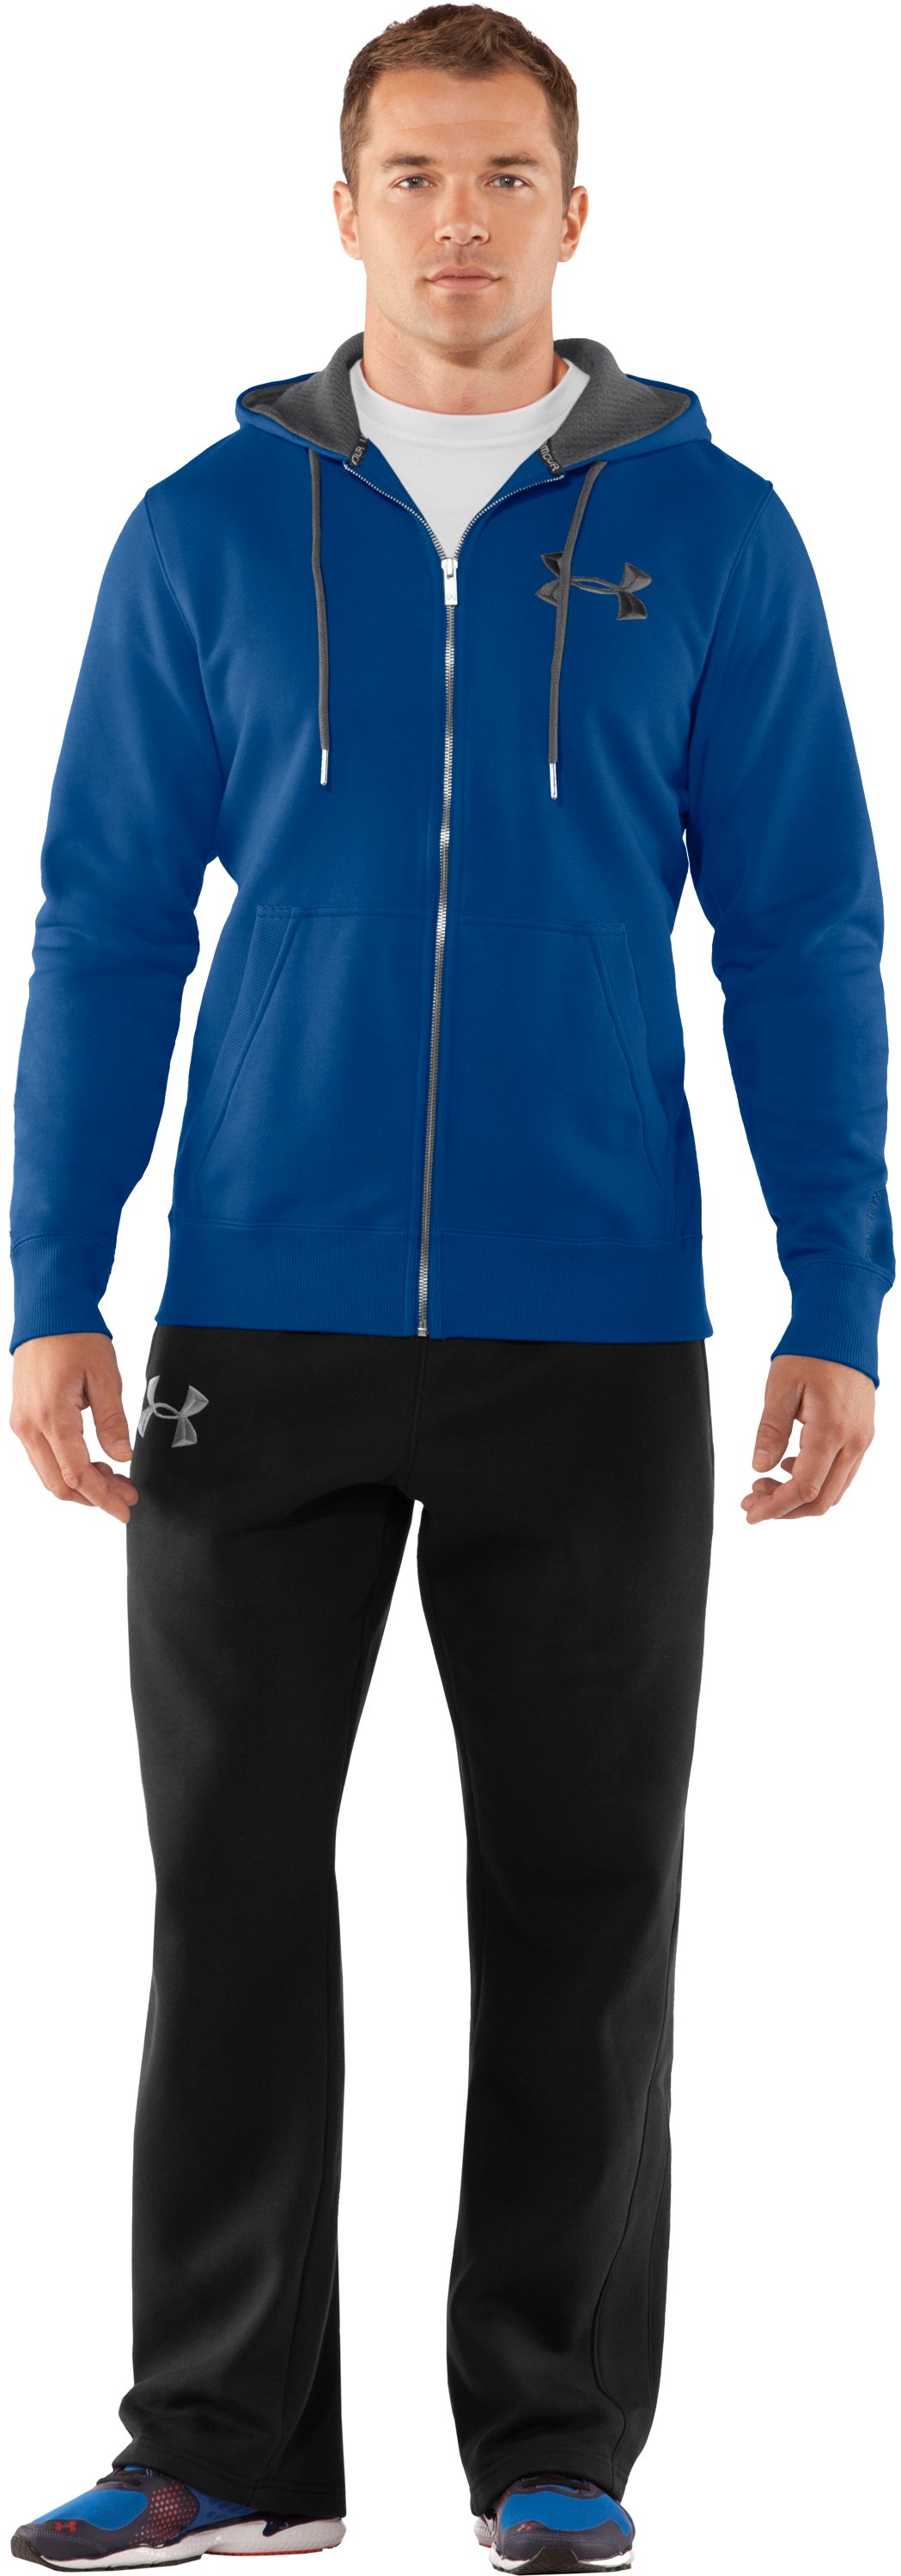 Men's Charged Cotton® Storm Full Zip Hoodie, EMPIRE BLUE, Front